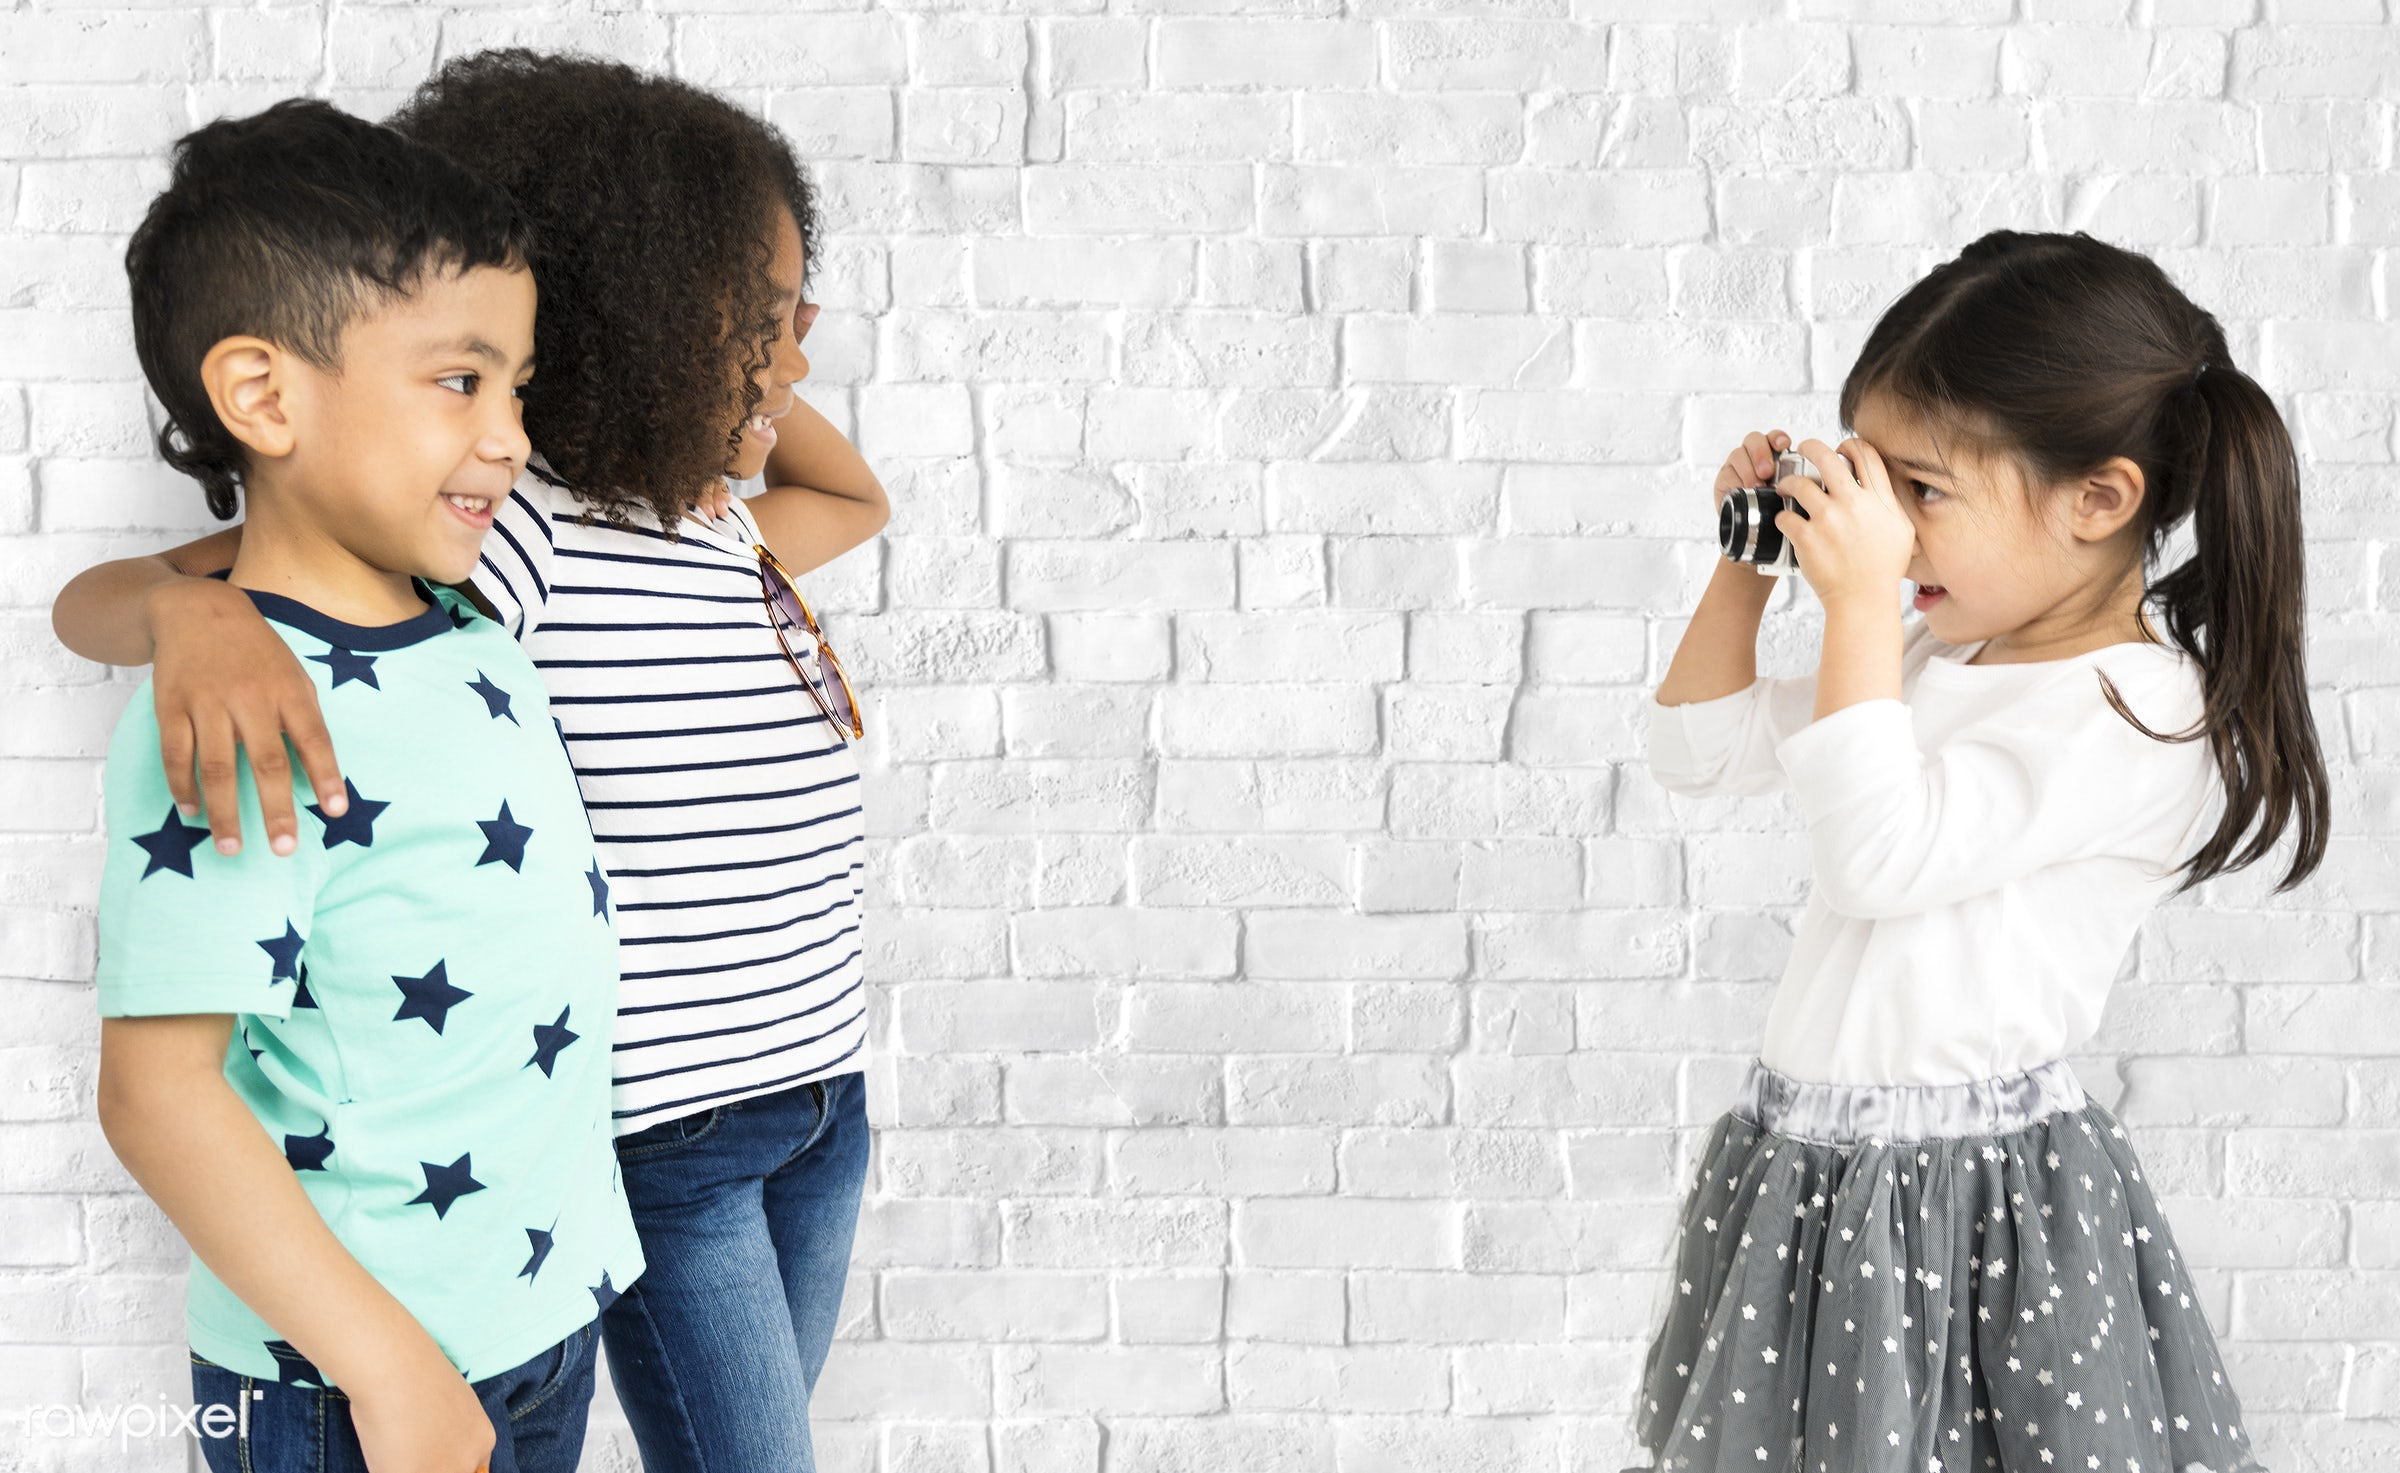 studio, expression, person, photograph, little, recreation, people, kid, student, lifestyle, photographer, friendship,...